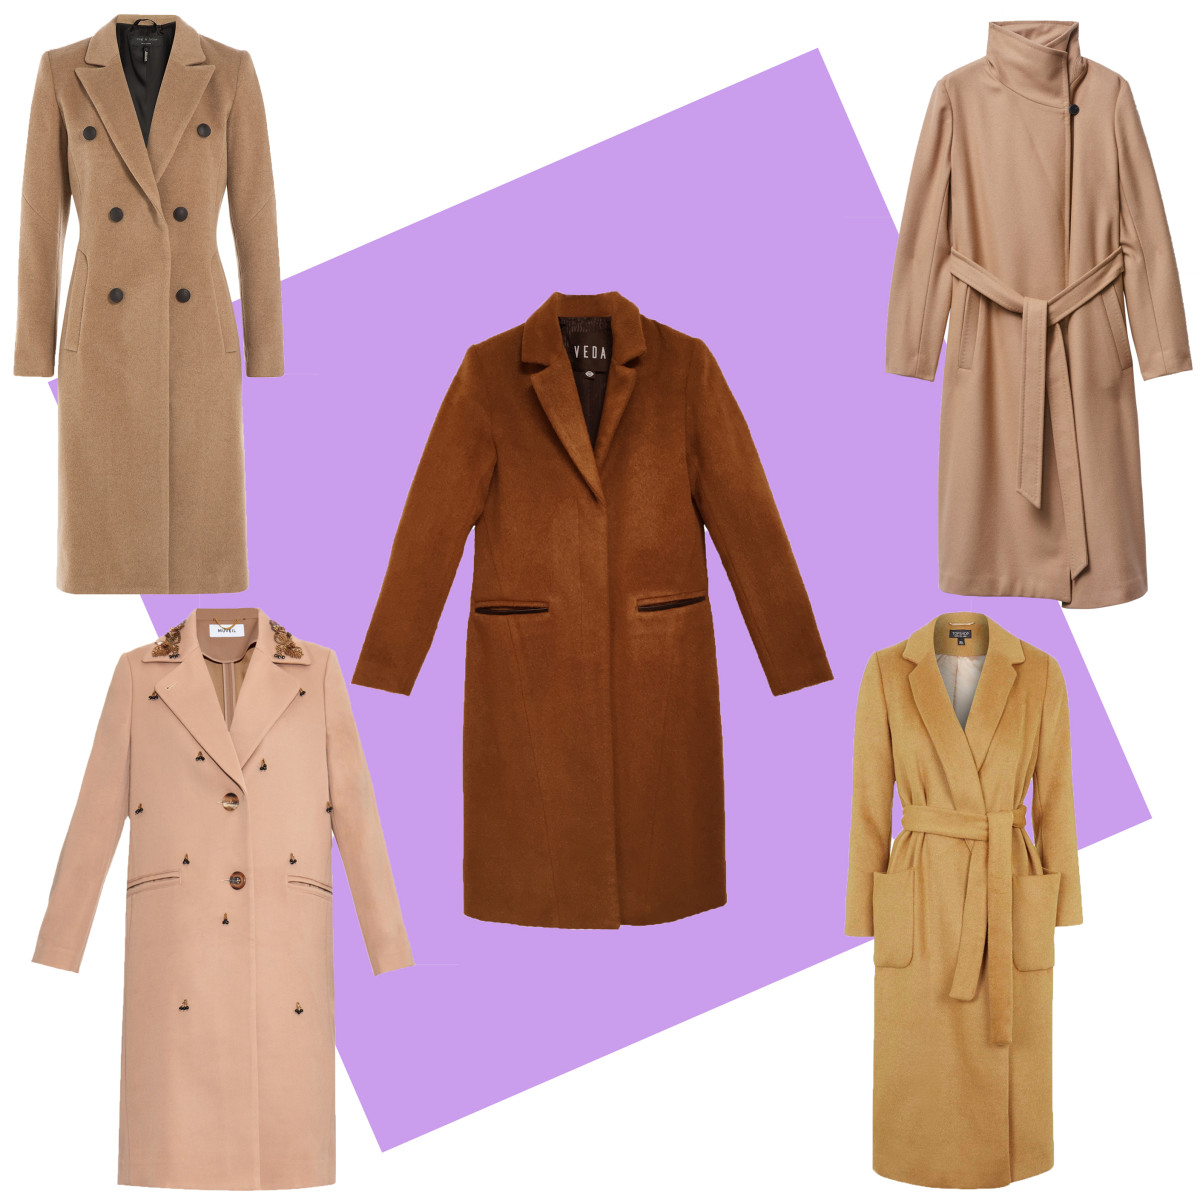 TOP LEFT: Rag & Bone camel coat, $995, available at Stylebop; CENTER: Veda wool coat camel, $770, available at Veda; TOP RIGHT: Babton Jacoby coat, $295, available at Aritzia; BOTTOM LEFT: Muveil embellished twill coat, $882, available at Matches Fashion; BOTTOM RIGHT: Topshop belted wool blend coat, $170, available at Topshop.